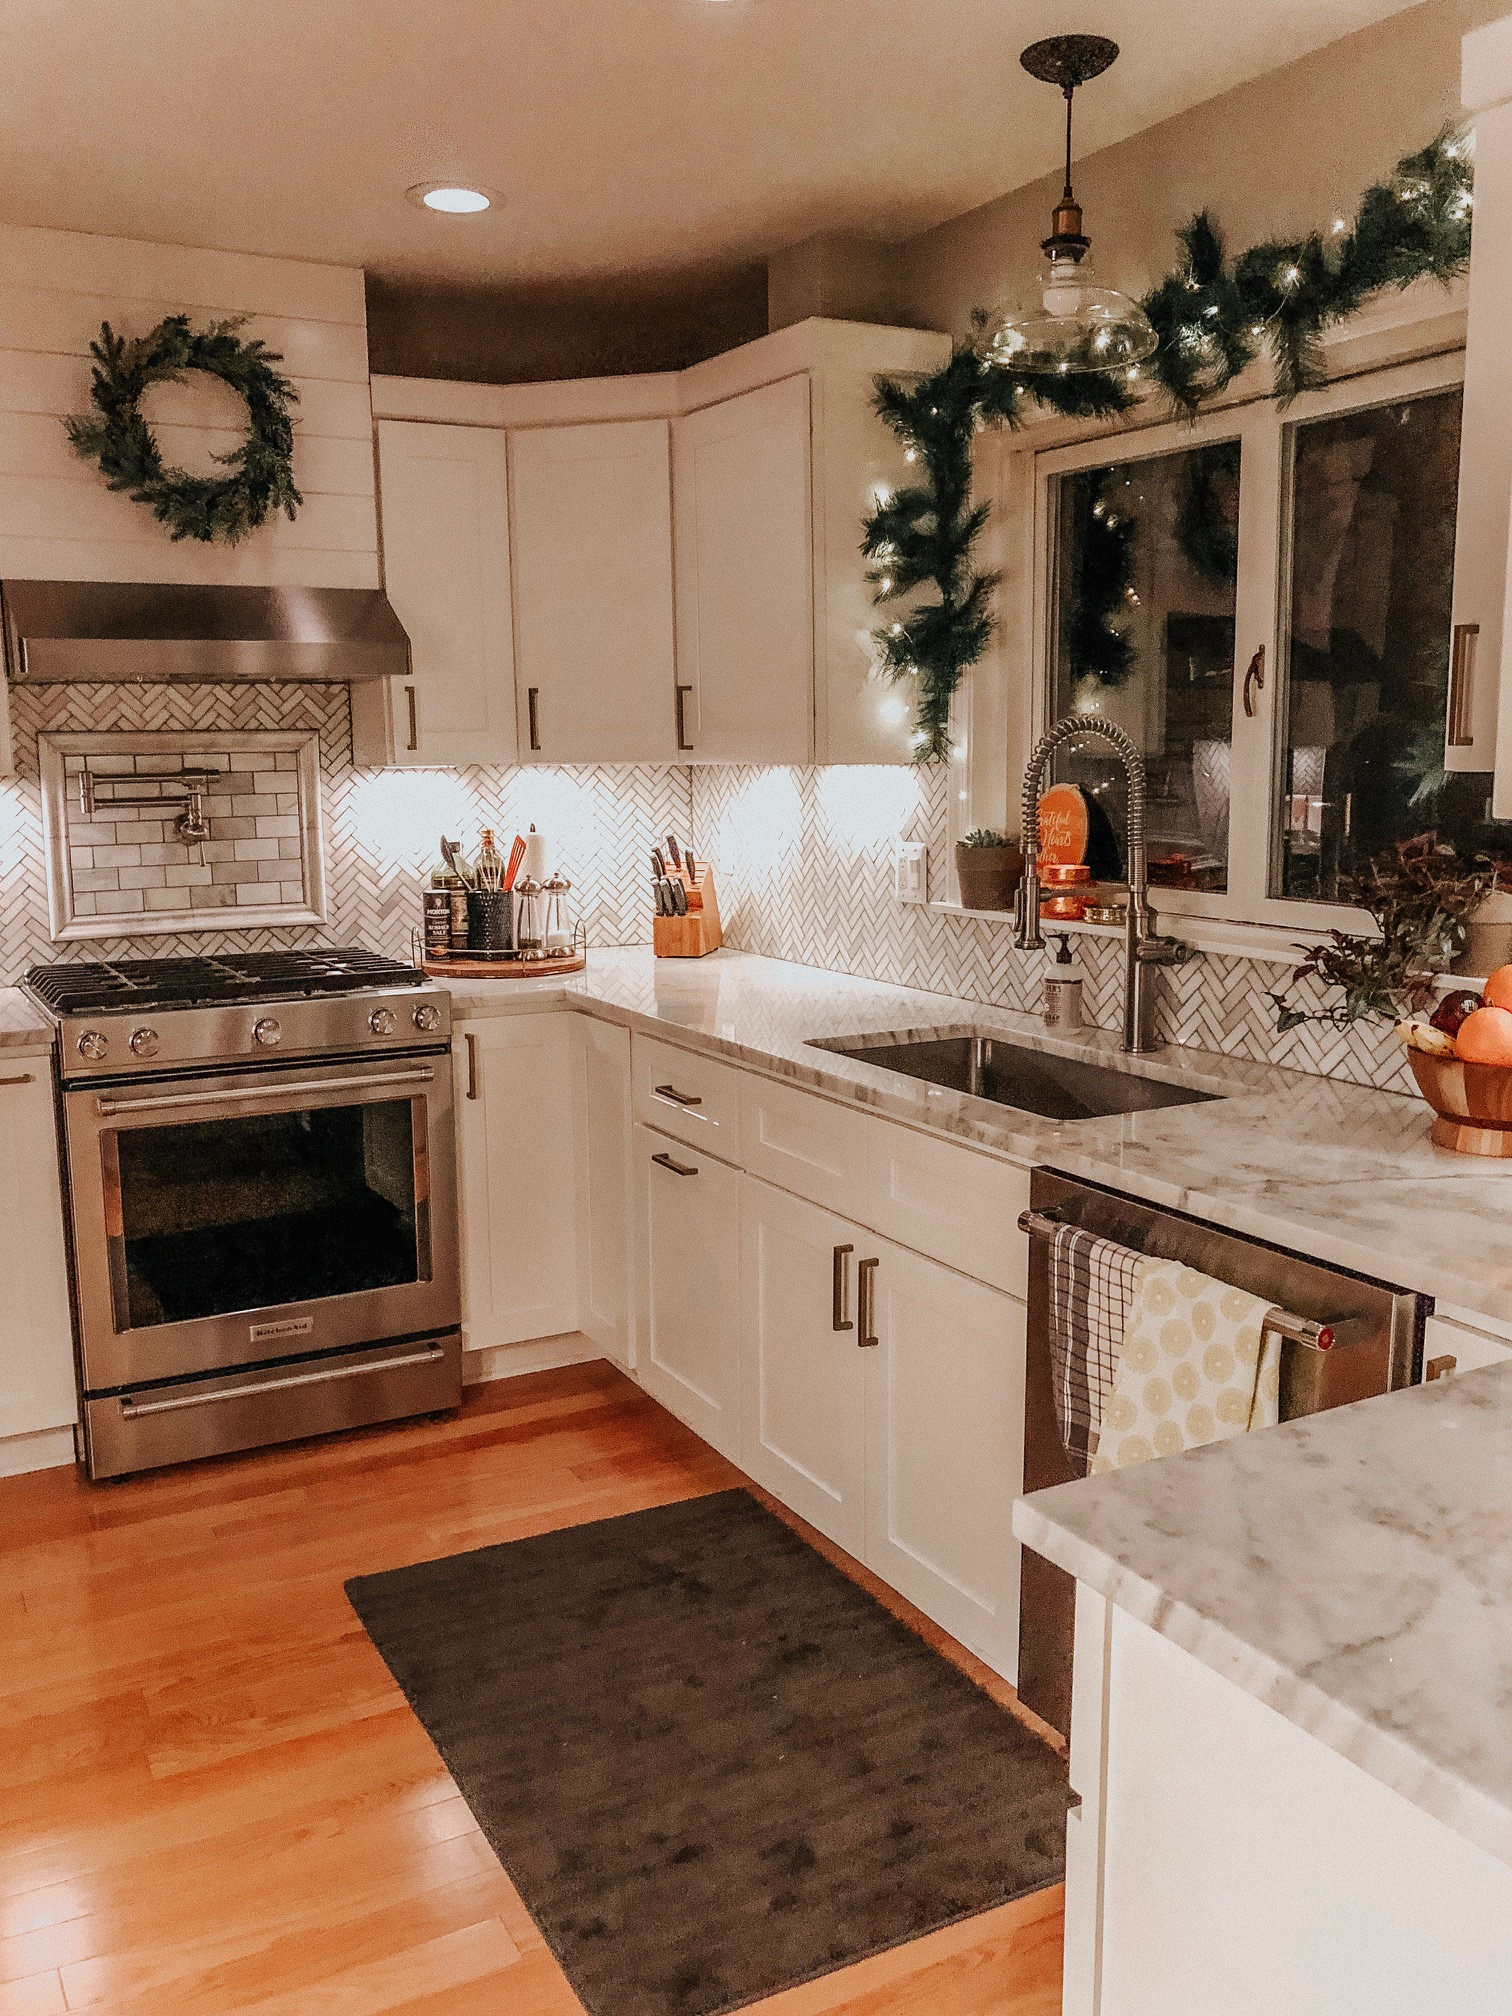 Holiday Decor Tips and Ideas | Daily Splendor Life and Style Blog | Kitchen Decor, garland, twinkle lights, holidays, christmas, wreath #kitcheninspo #cozyhome #christmaswindow #christmasgarland #christmasdecor